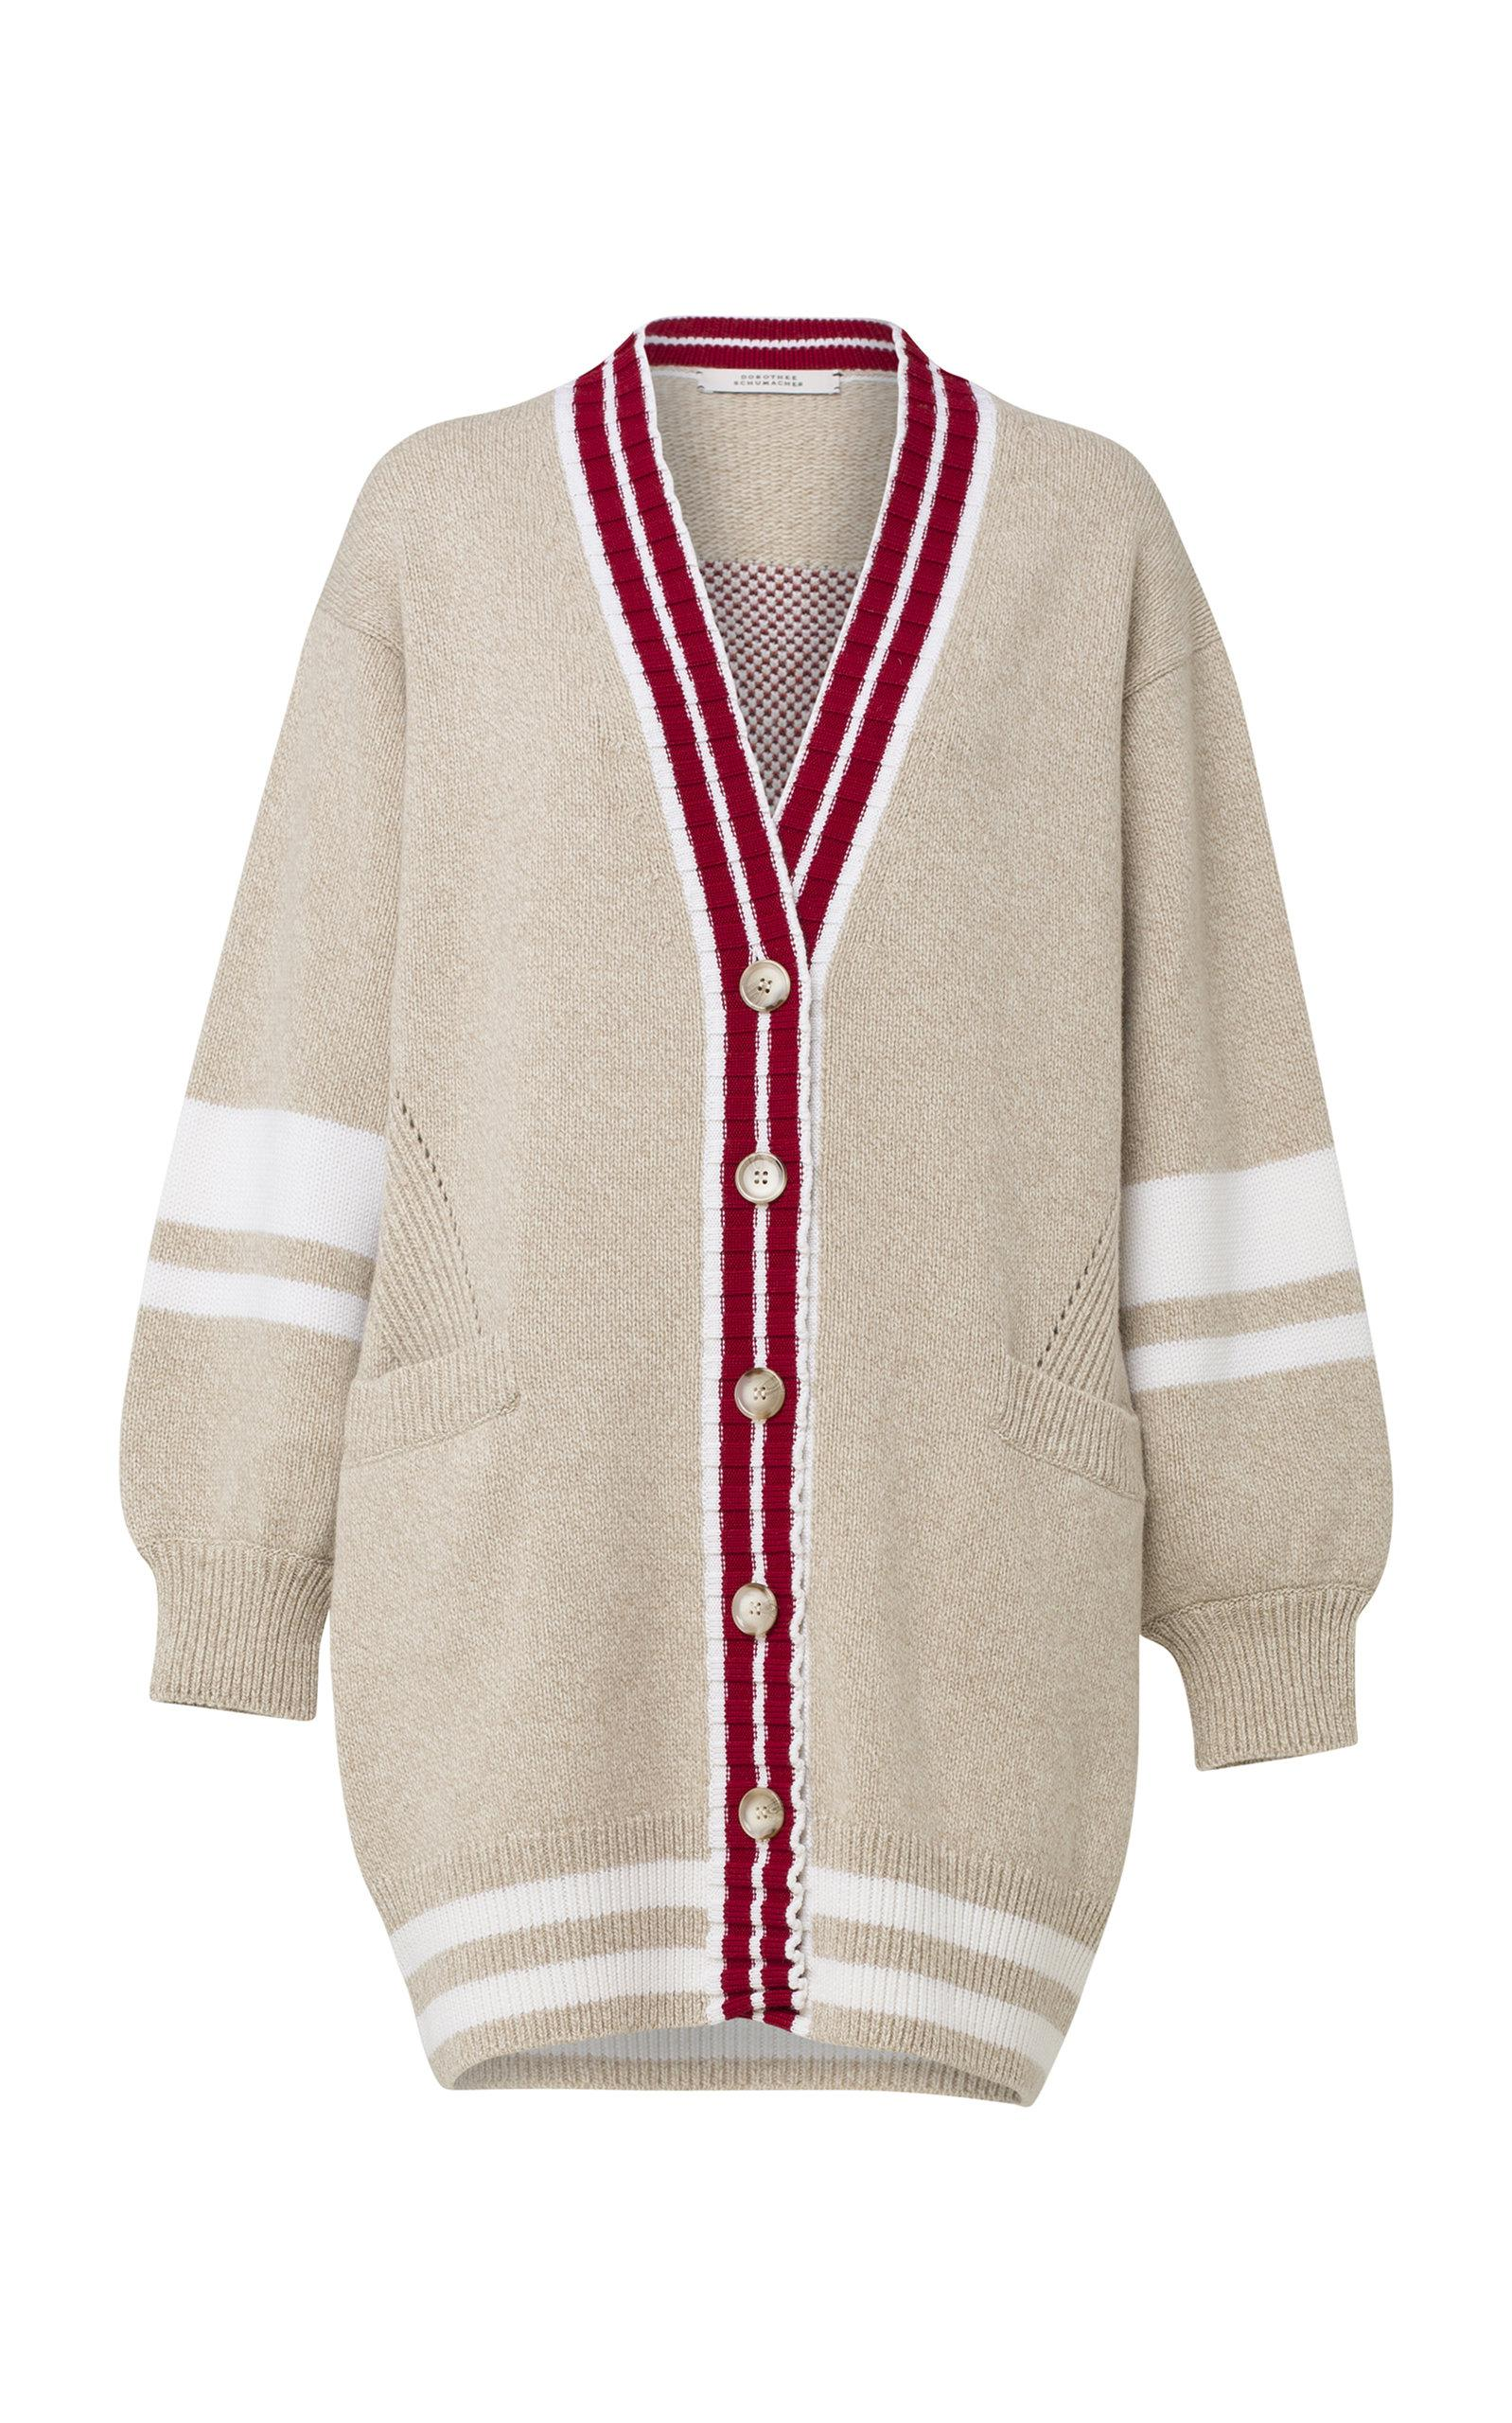 Dorothee Schumacher Fringe Vitality Striped Wool-blend Cardigan - Lyst ccaac96f8